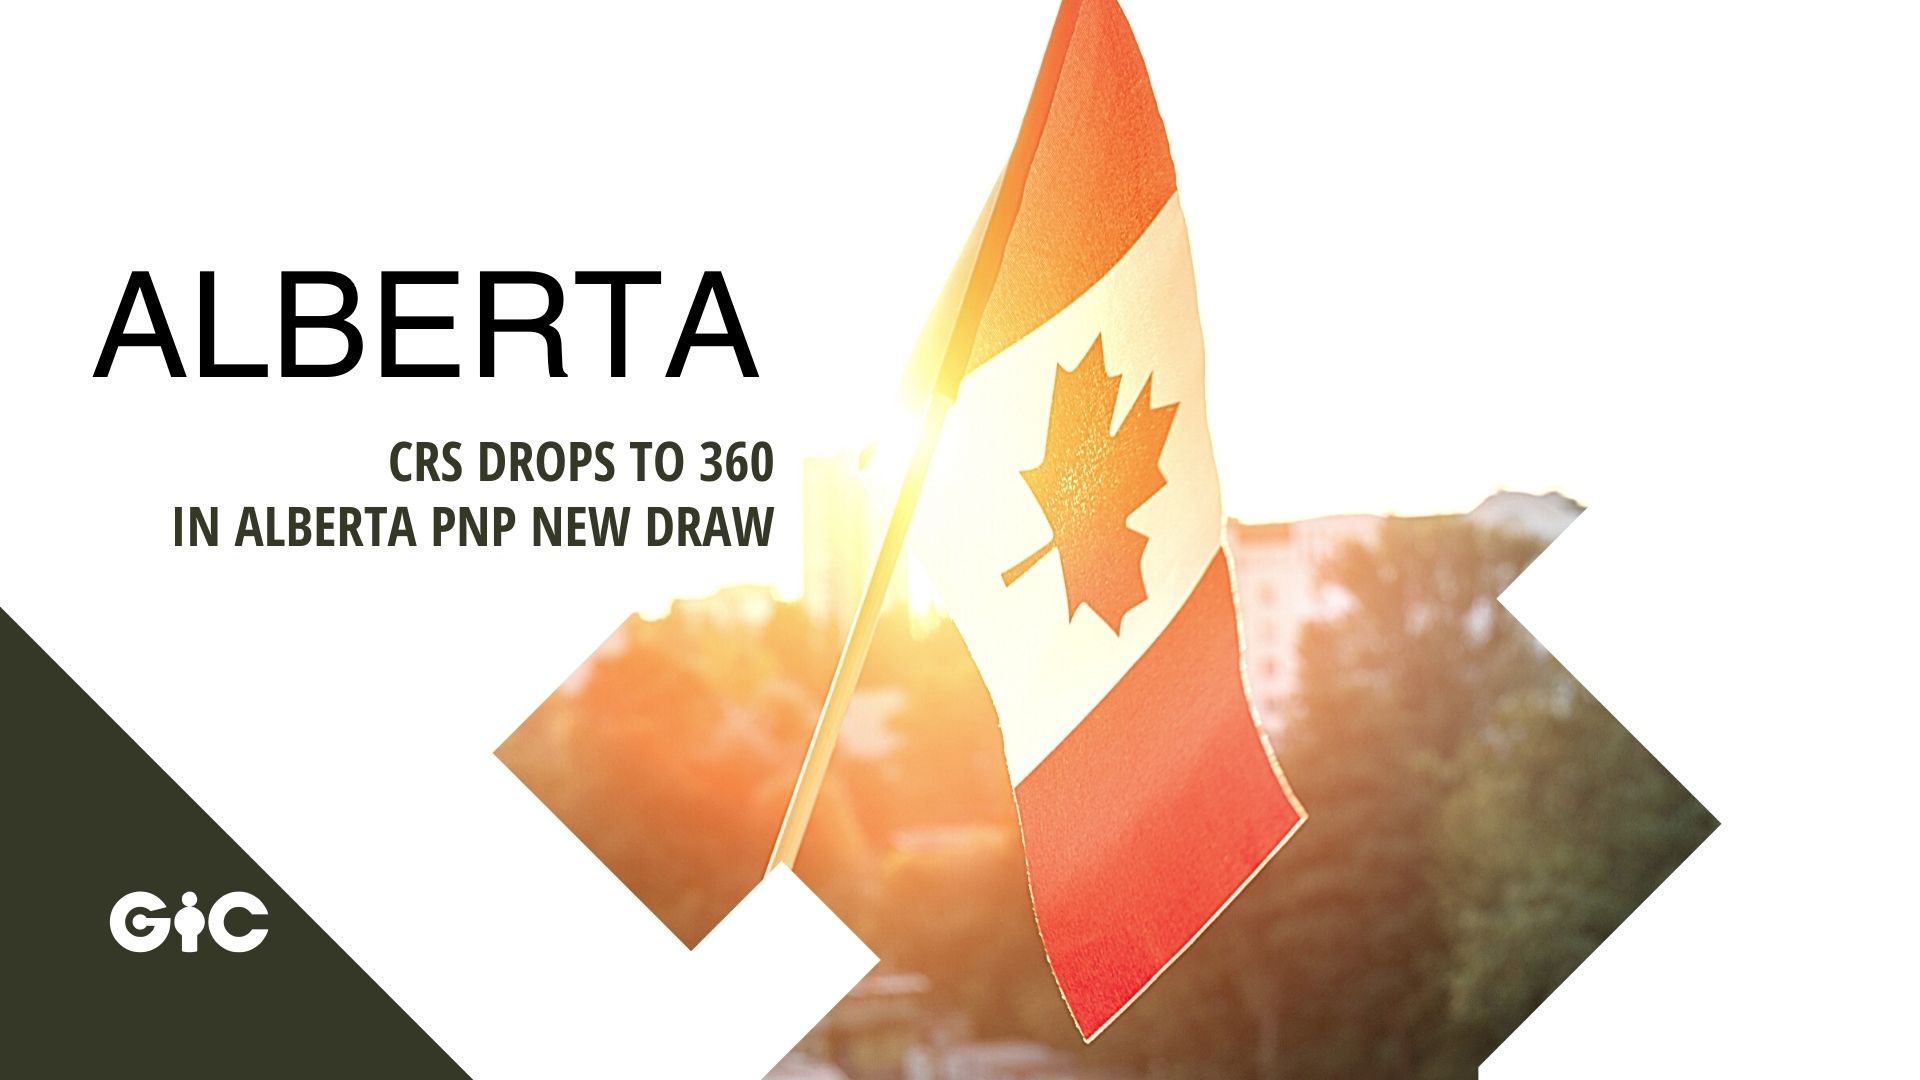 CRS drops to 360 in new Alberta PNP draw